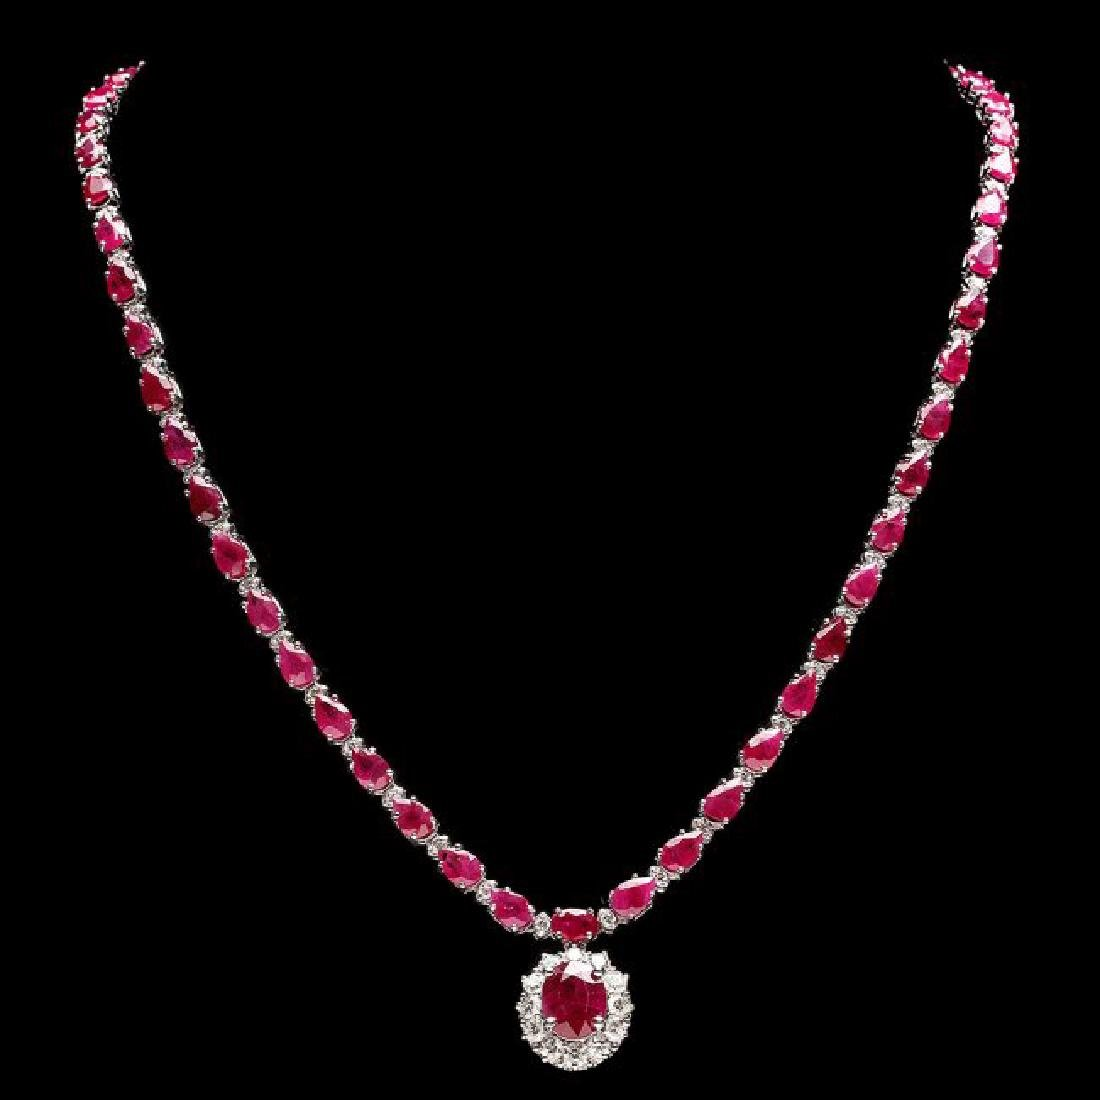 14k White Gold 32ct Ruby 2.50ct Diamond Necklace - 2